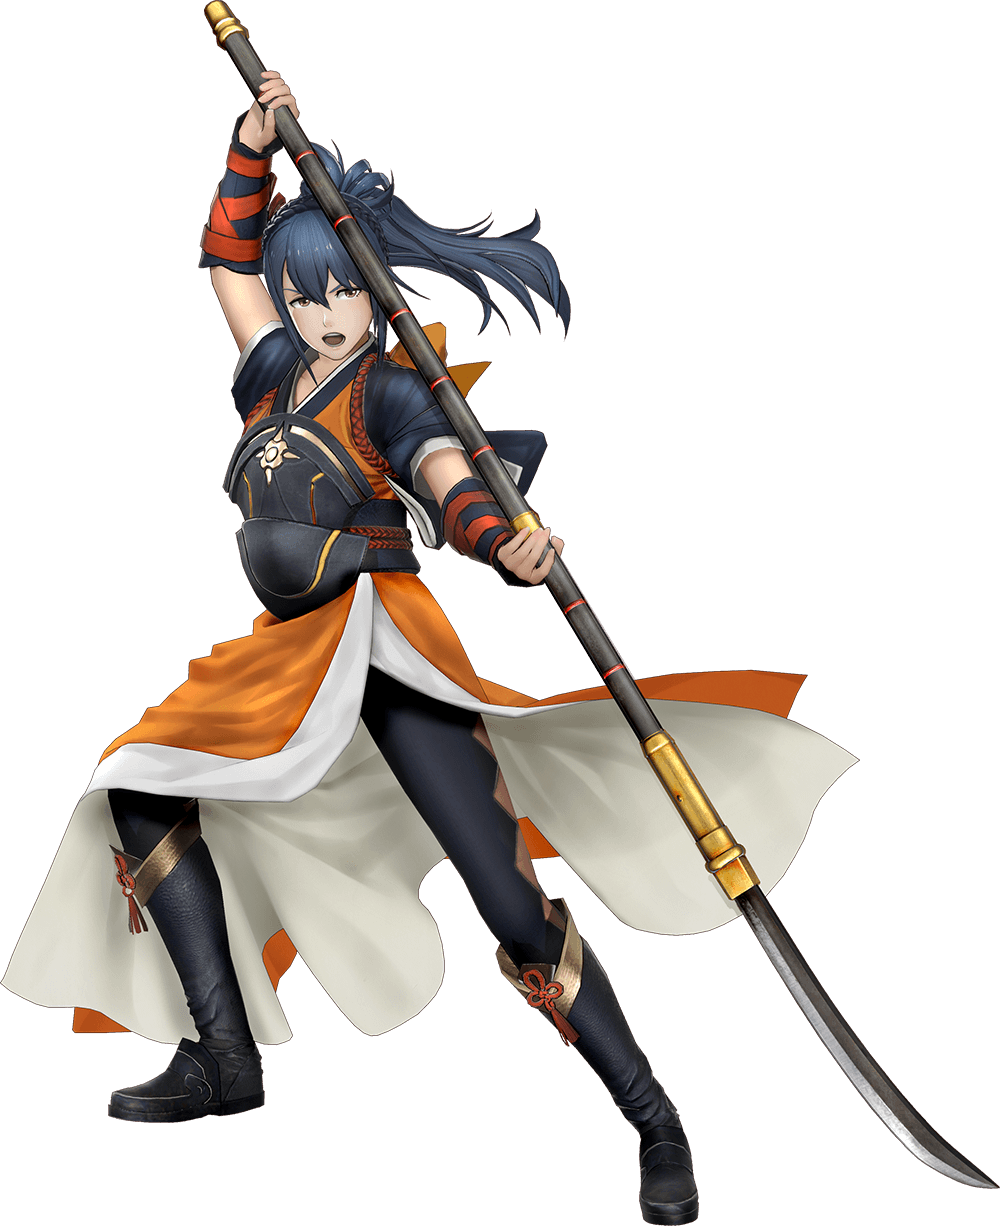 http://www.perfectly-nintendo.com/wp-content/gallery/fire-emblem-warriors-07-12-2017/5.png